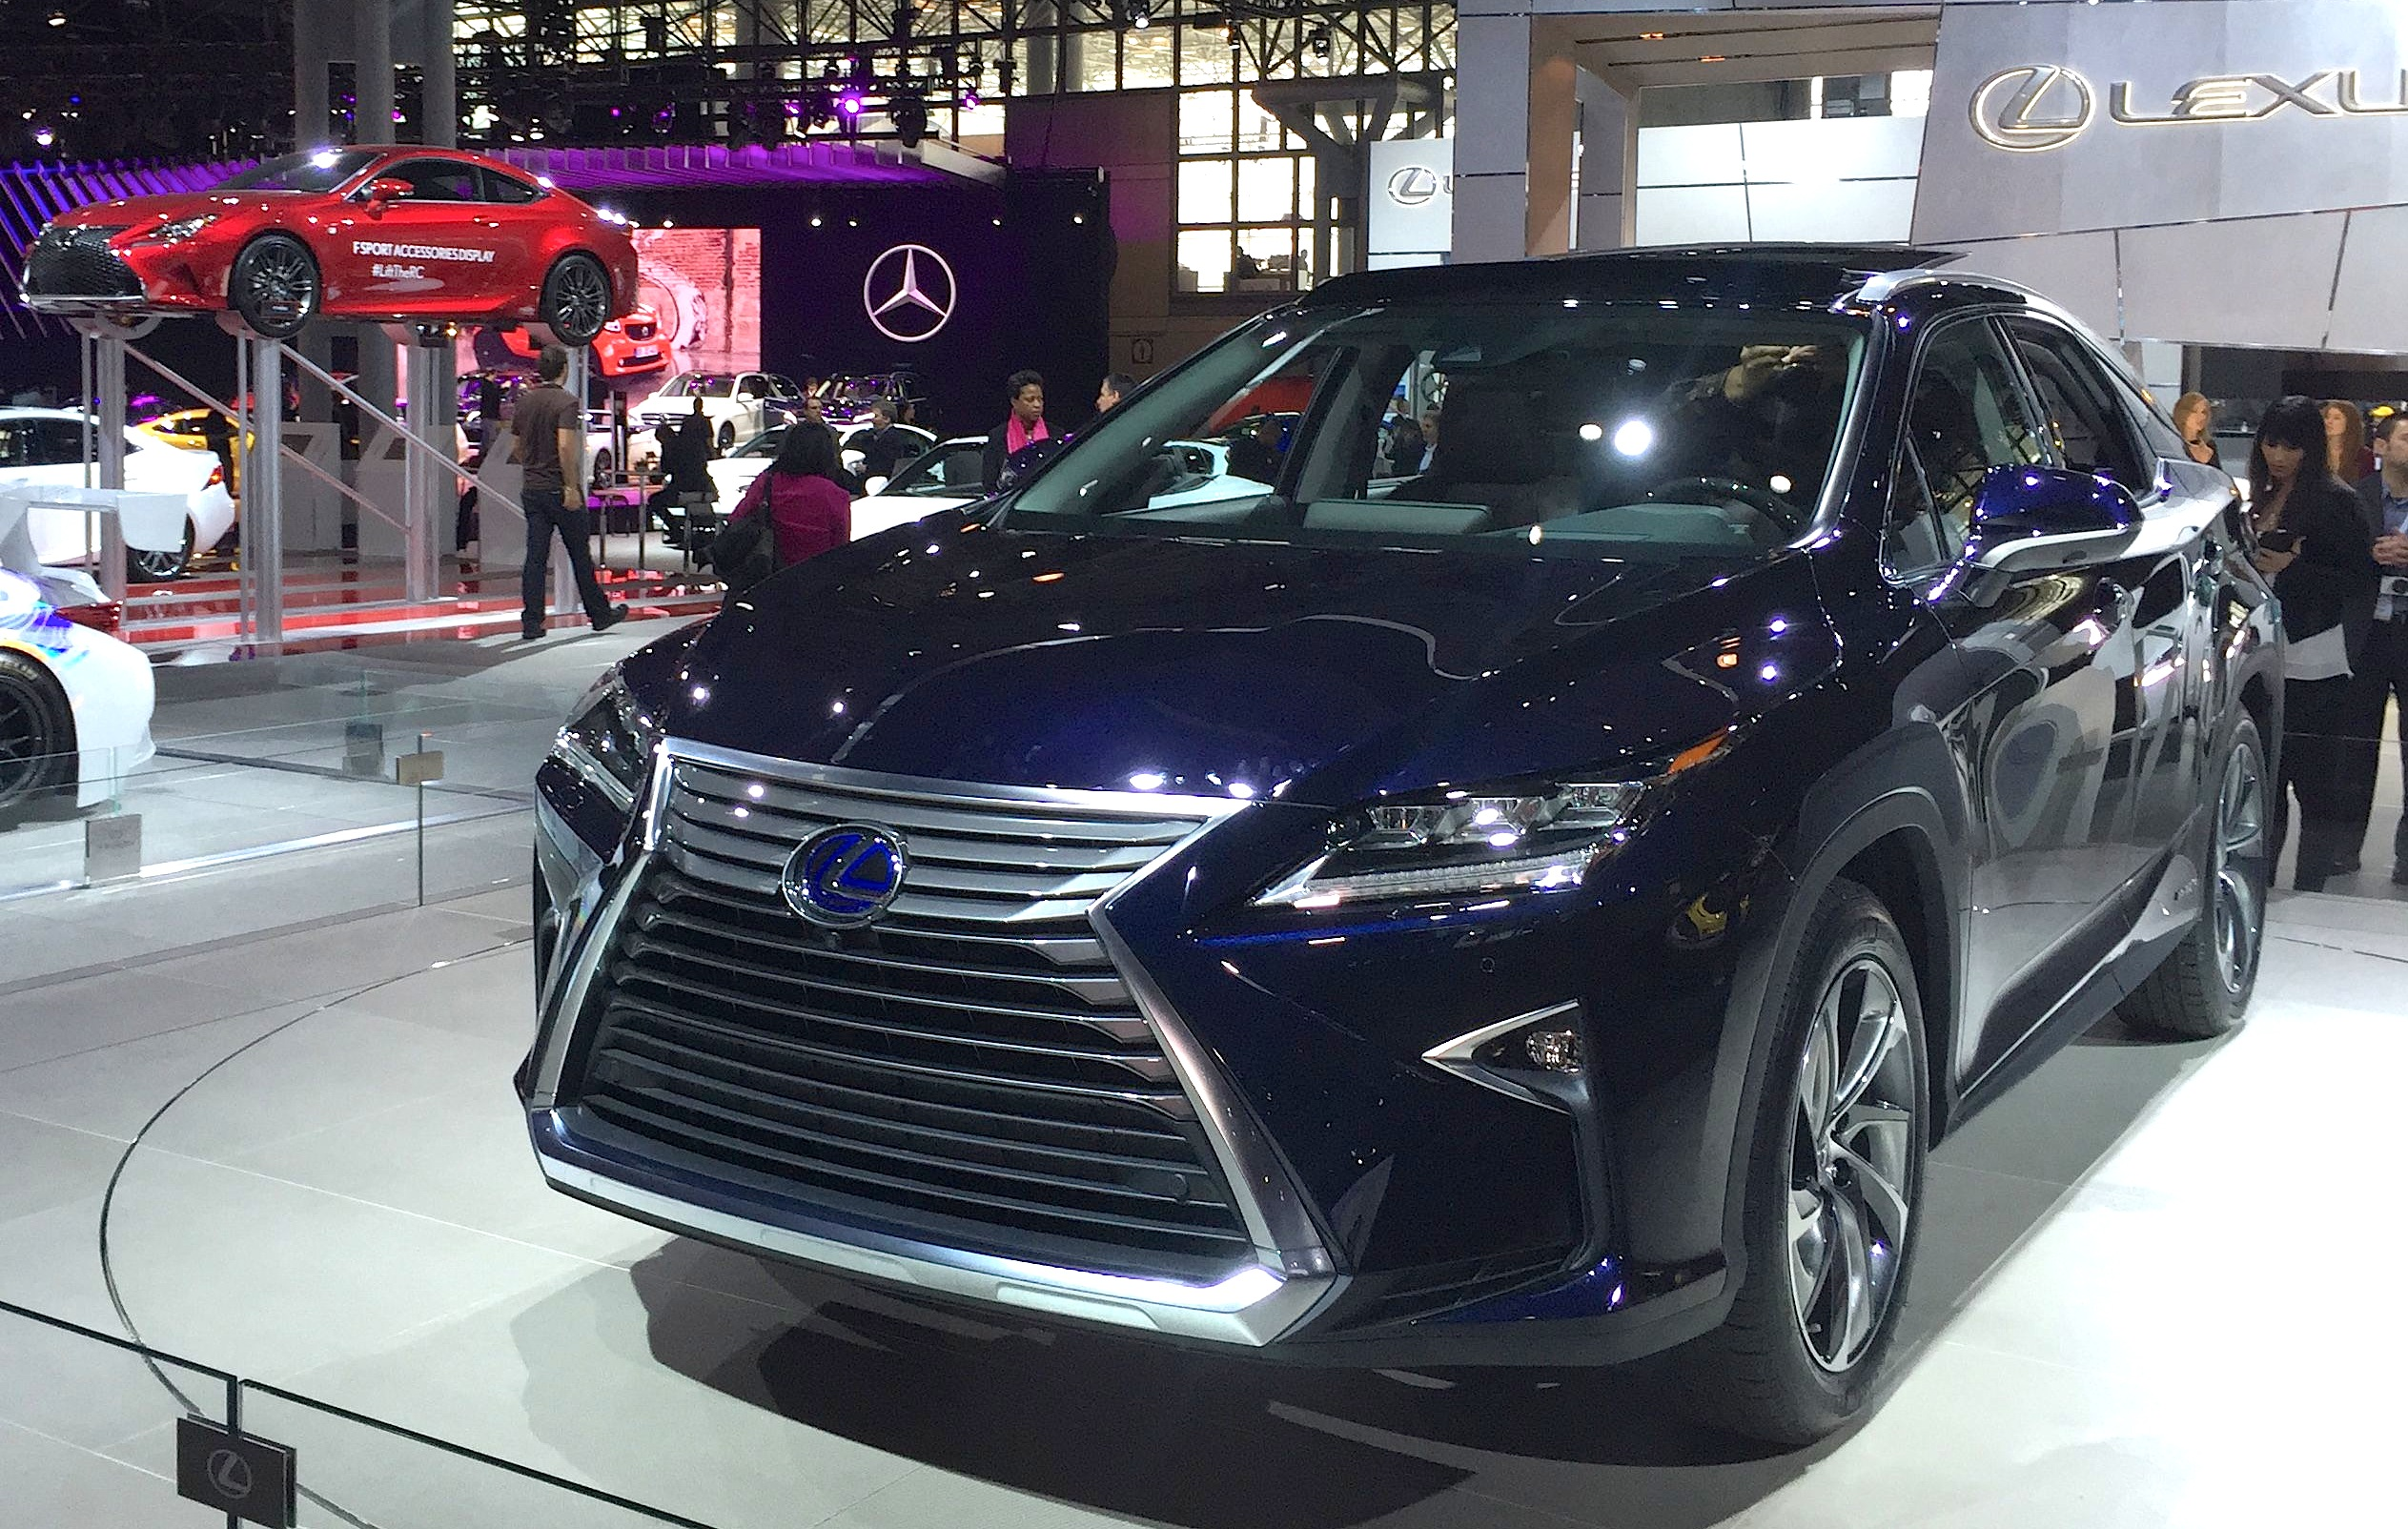 2016 Lexus RX 450h and RX 350 Debut at the 2015 New York Auto Show